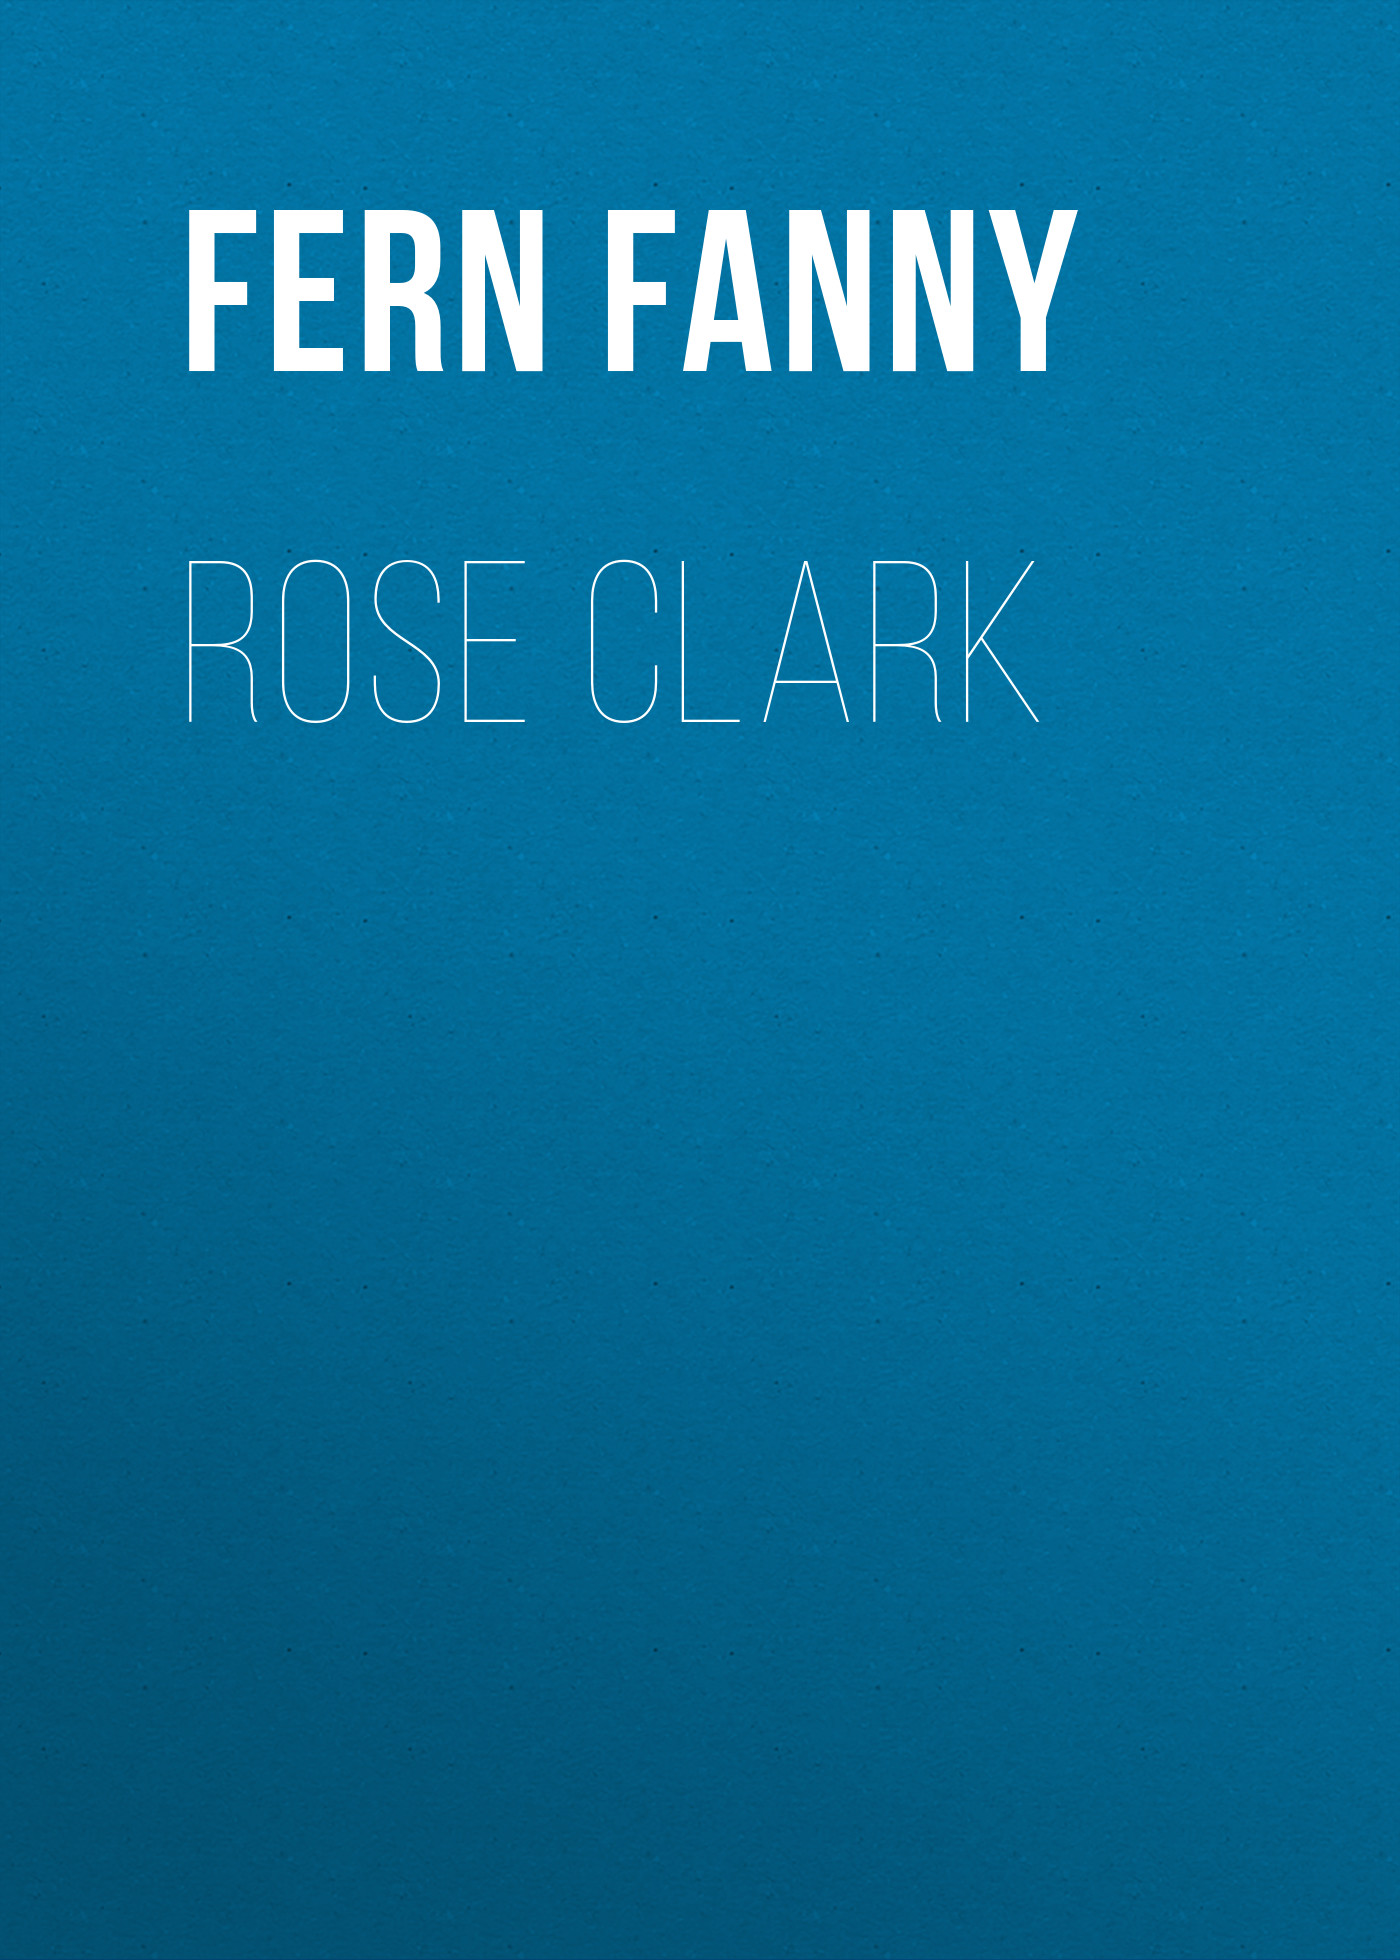 Fern Fanny Rose Clark fern fanny fresh leaves